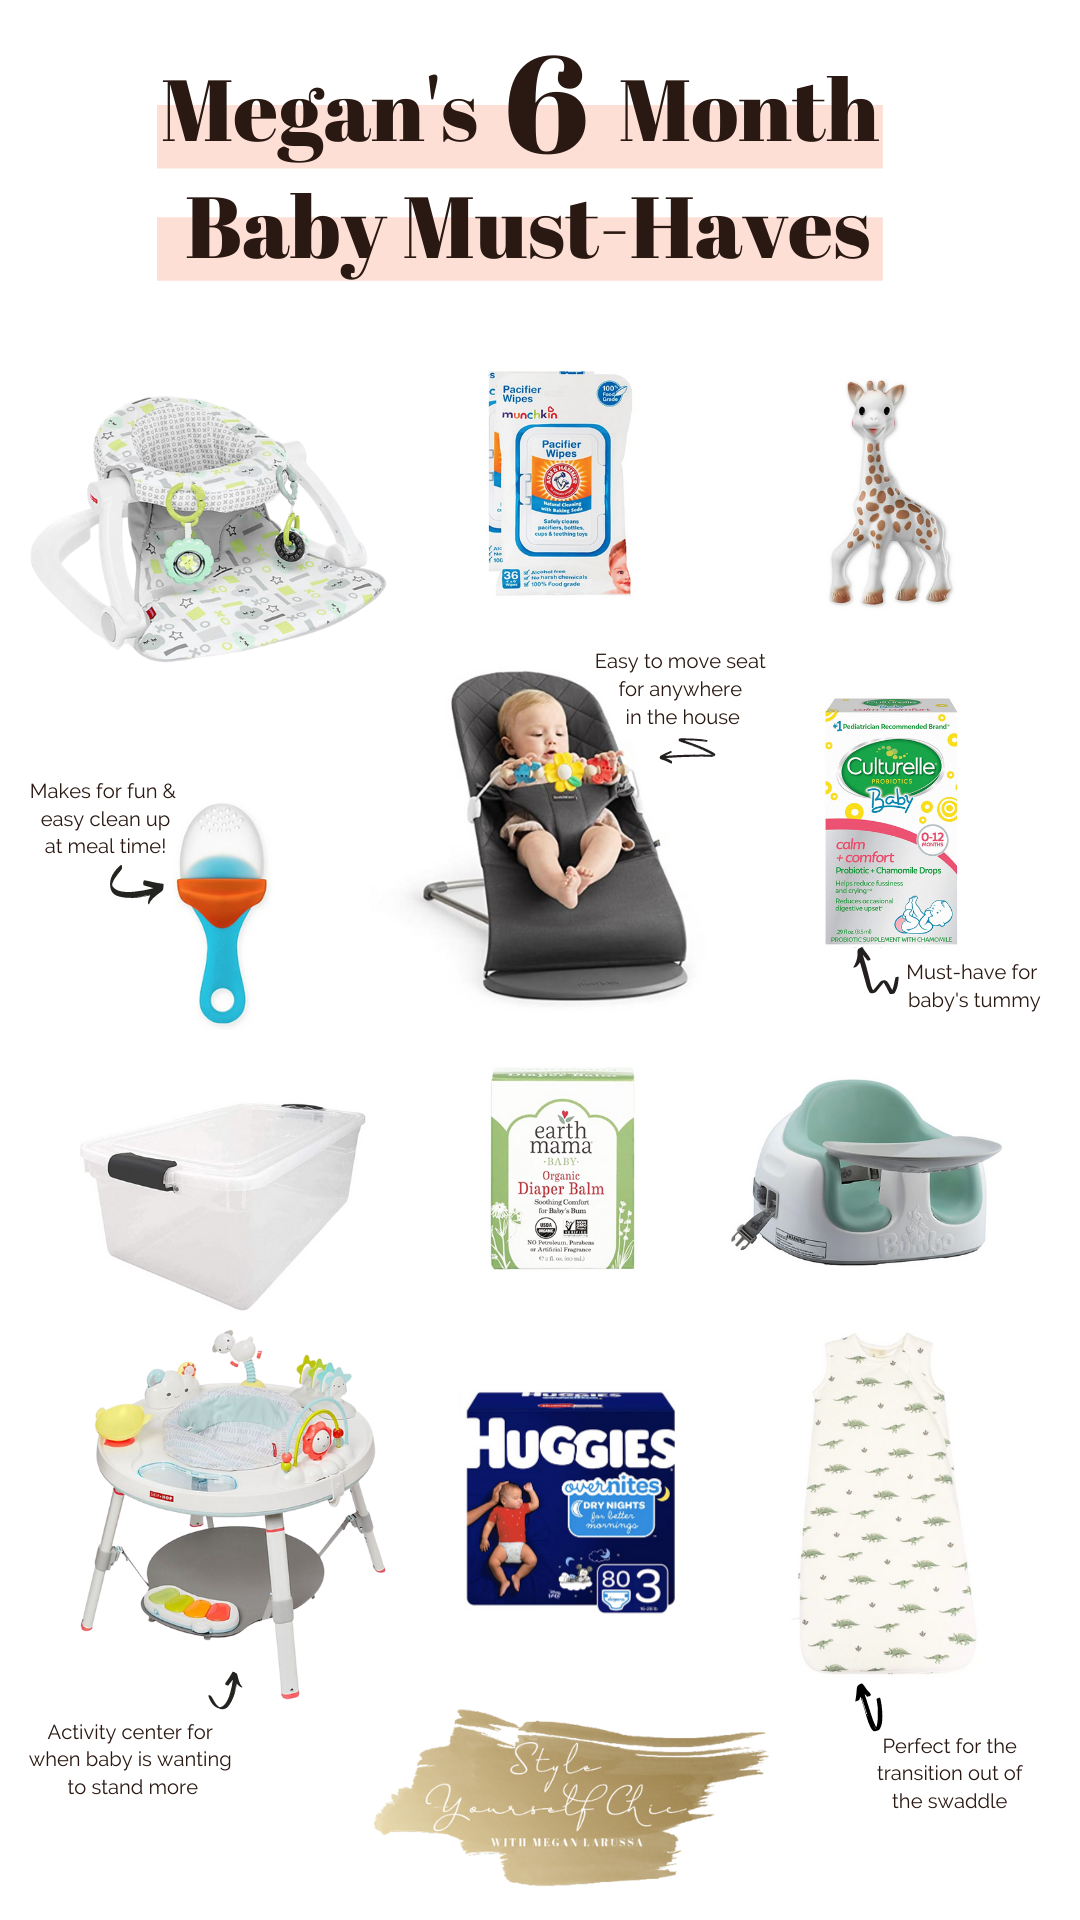 6 month baby must haves